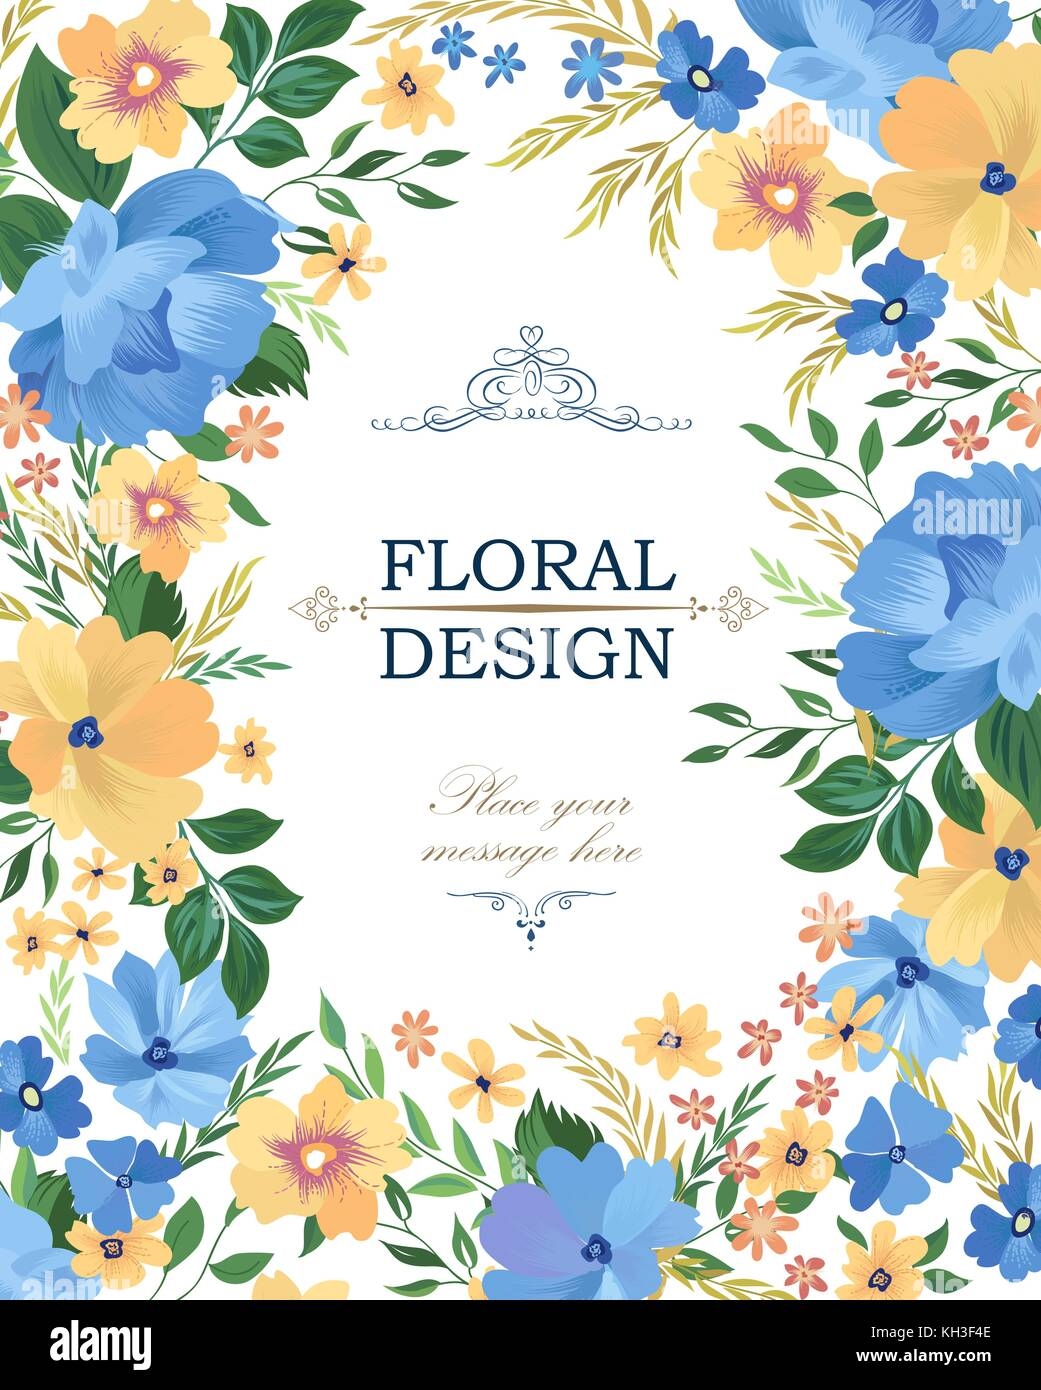 Floral Frame Pattern Flower Border Background Greeting Card Design